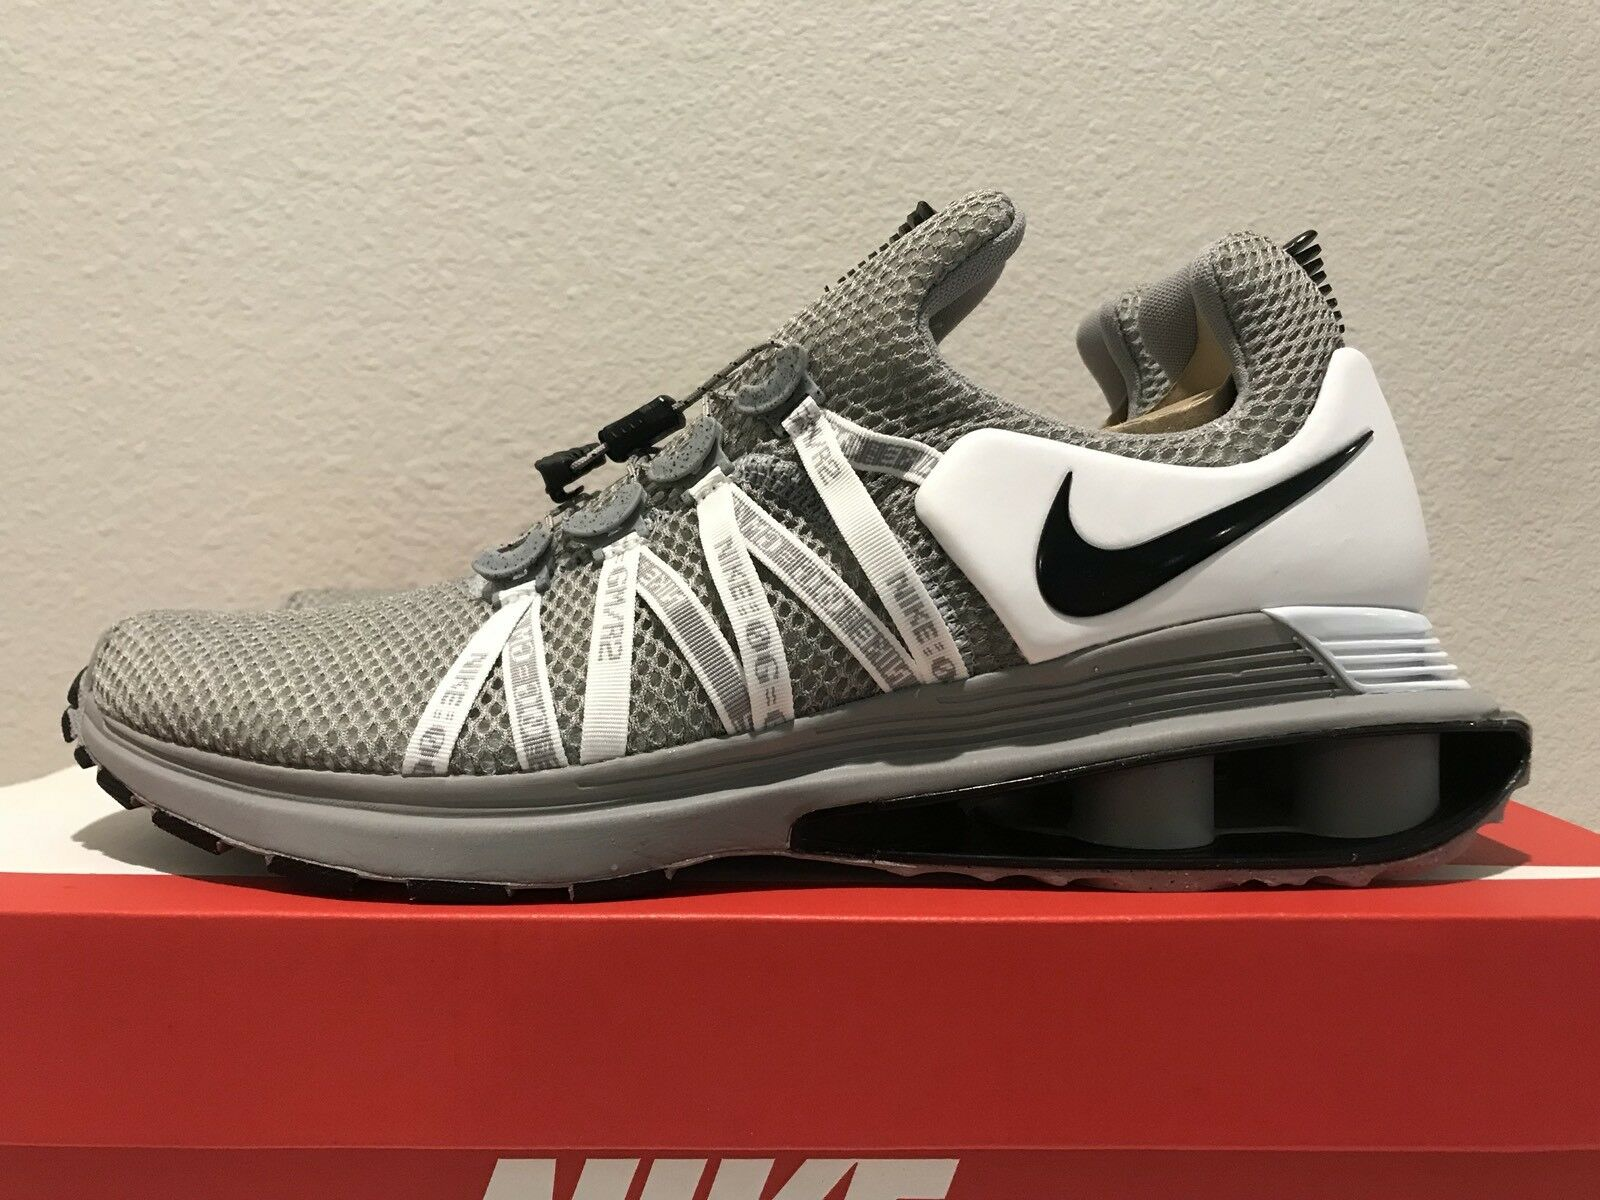 MEN'S NIKE SHOX GRAVITY RUNNING SHOES  NWB AR1999 010 Comfortable The latest discount shoes for men and women